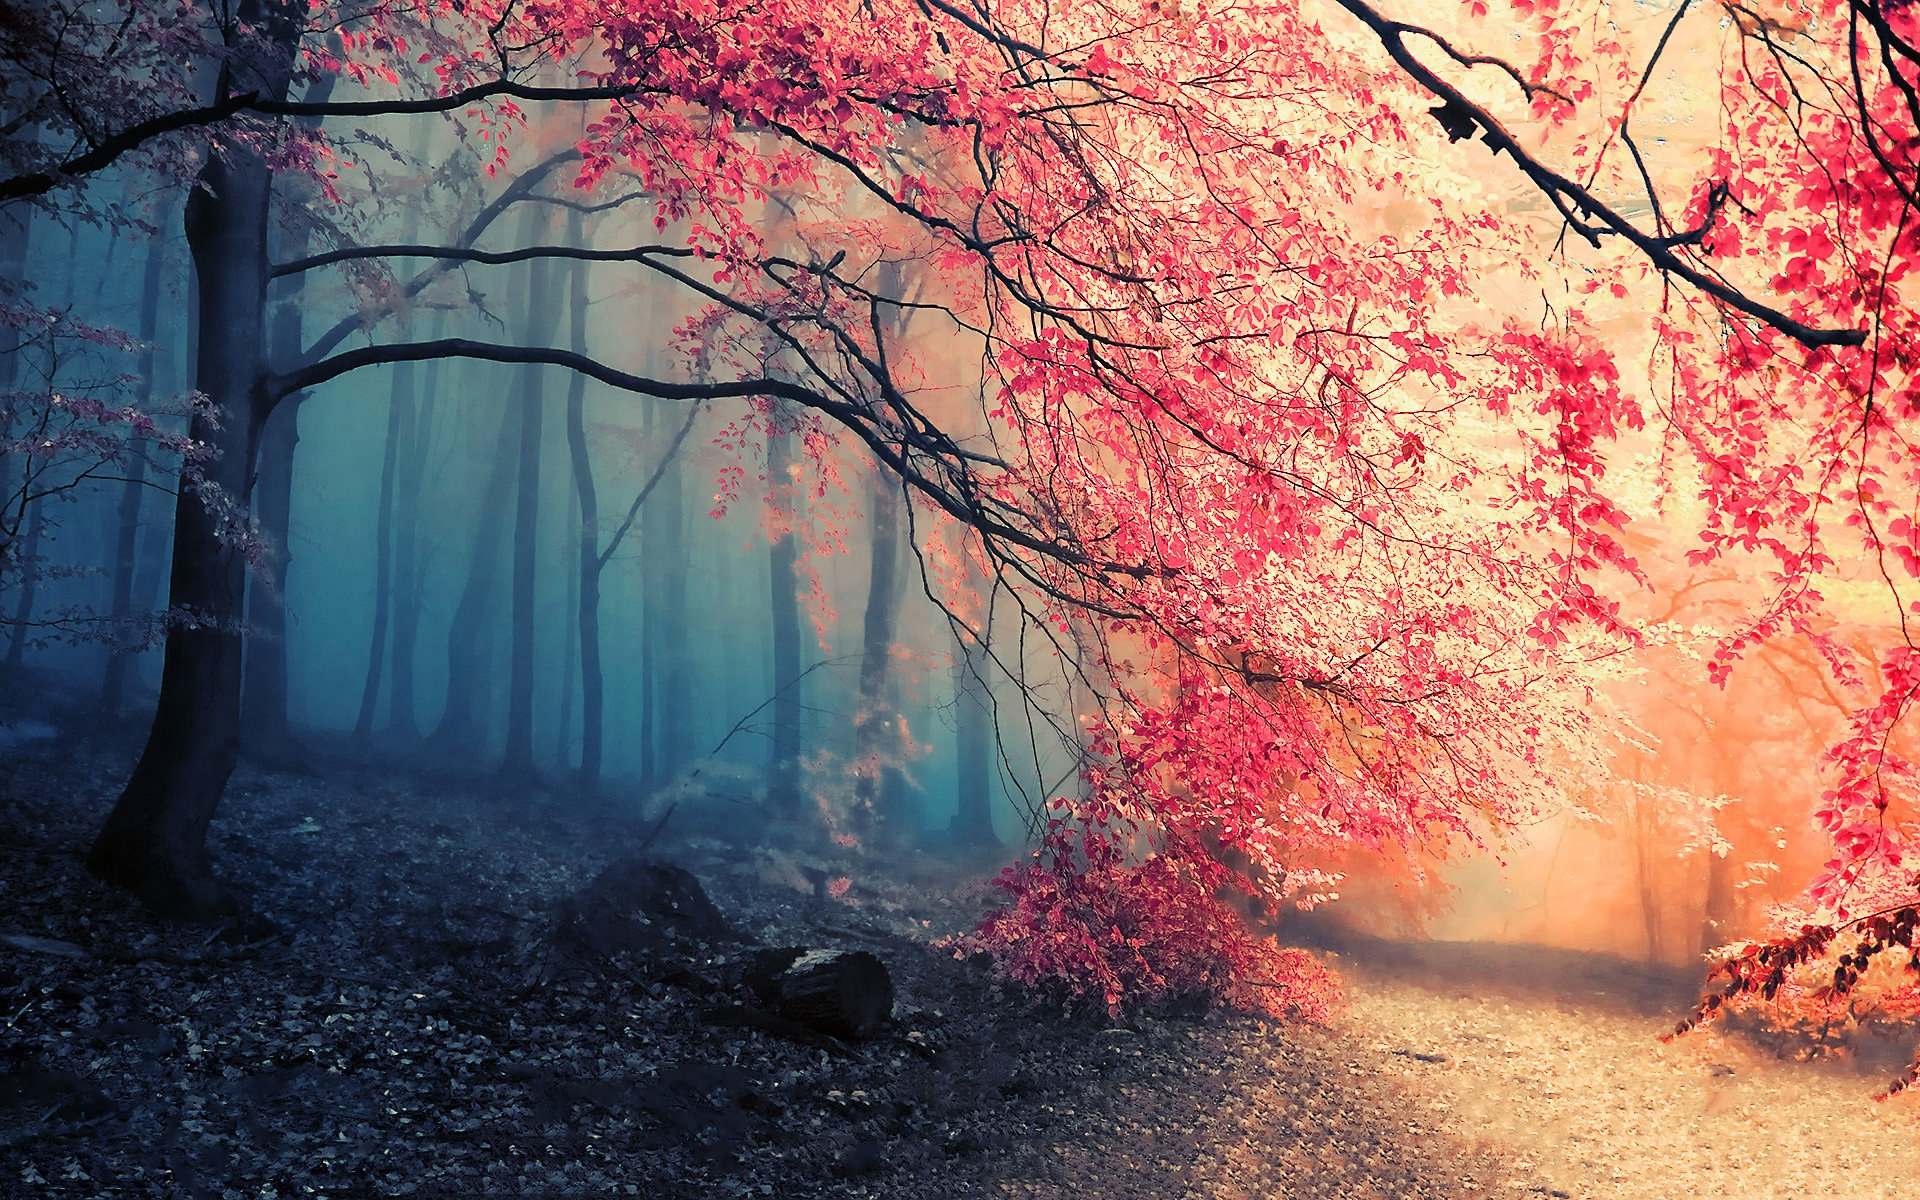 1668 Forest HD Wallpapers   Backgrounds - Wallpaper Abyss